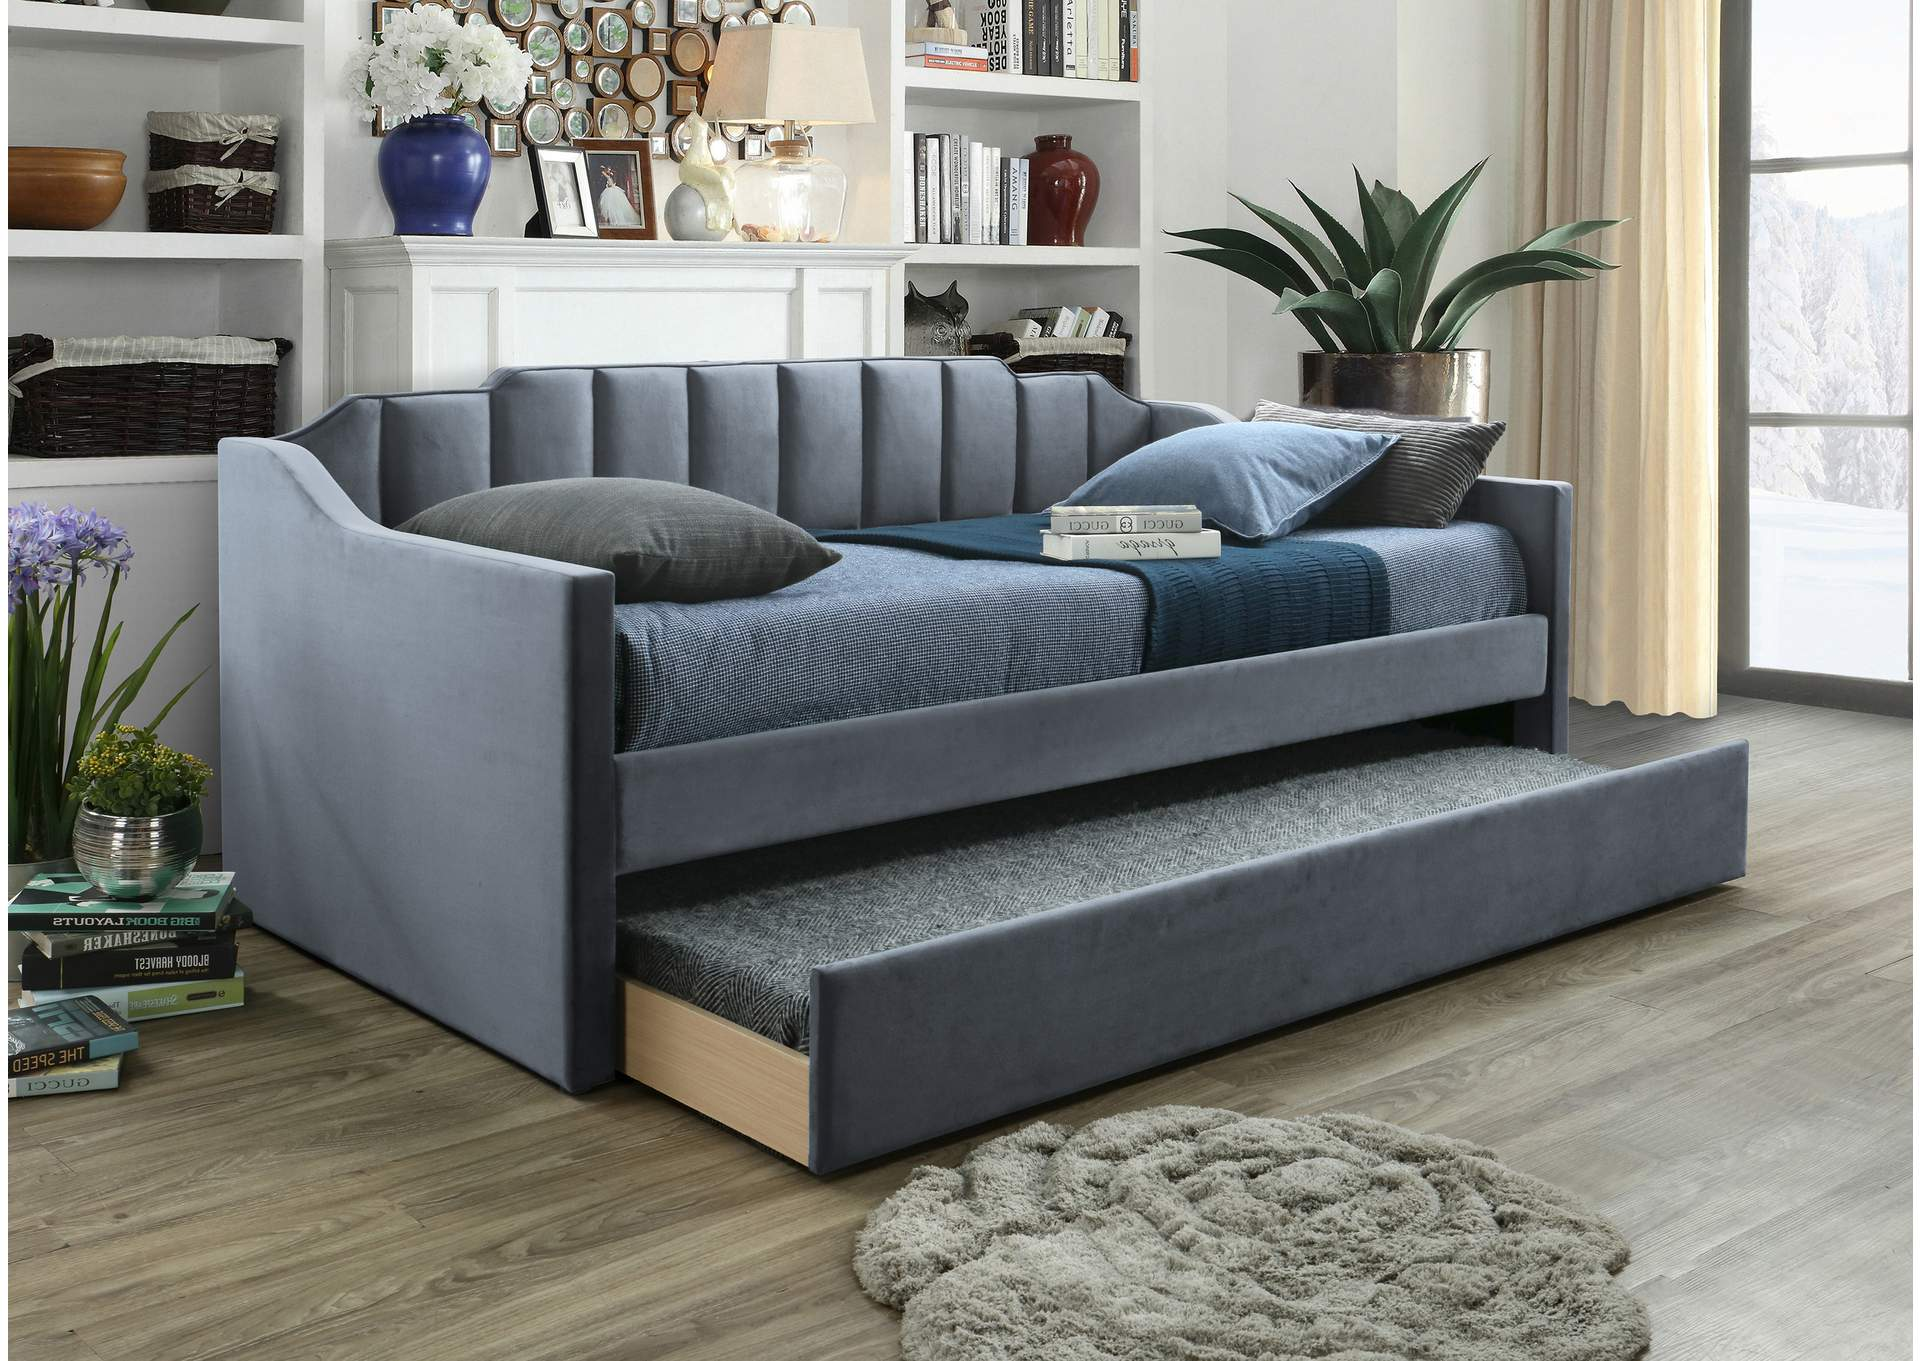 Menken Grey Daybed,Crown Mark